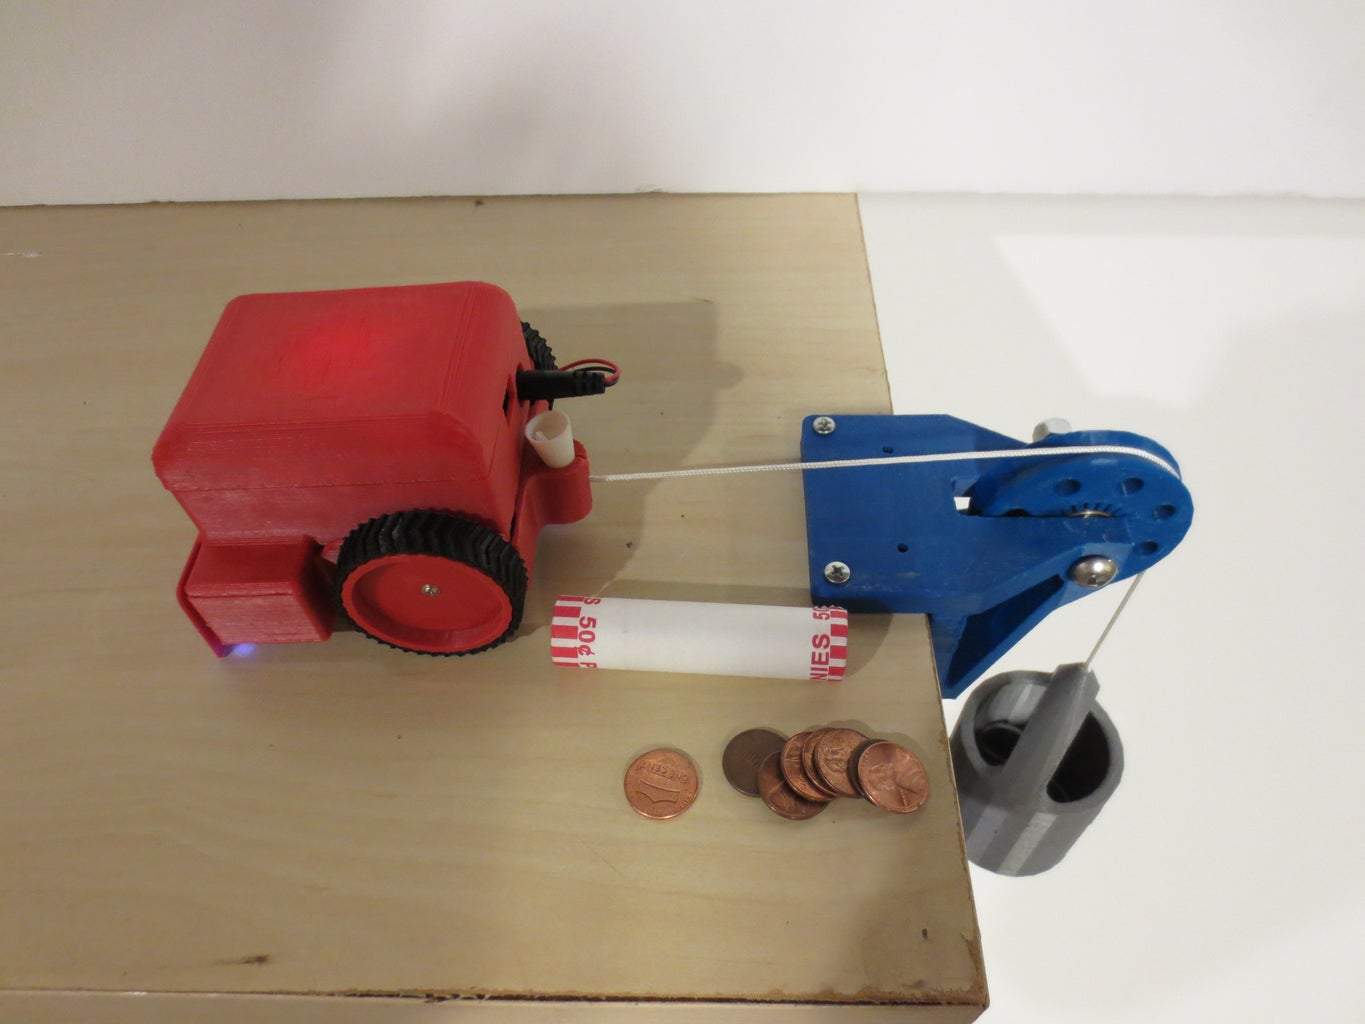 3D Modeling & 3D Printing Sumo Parts